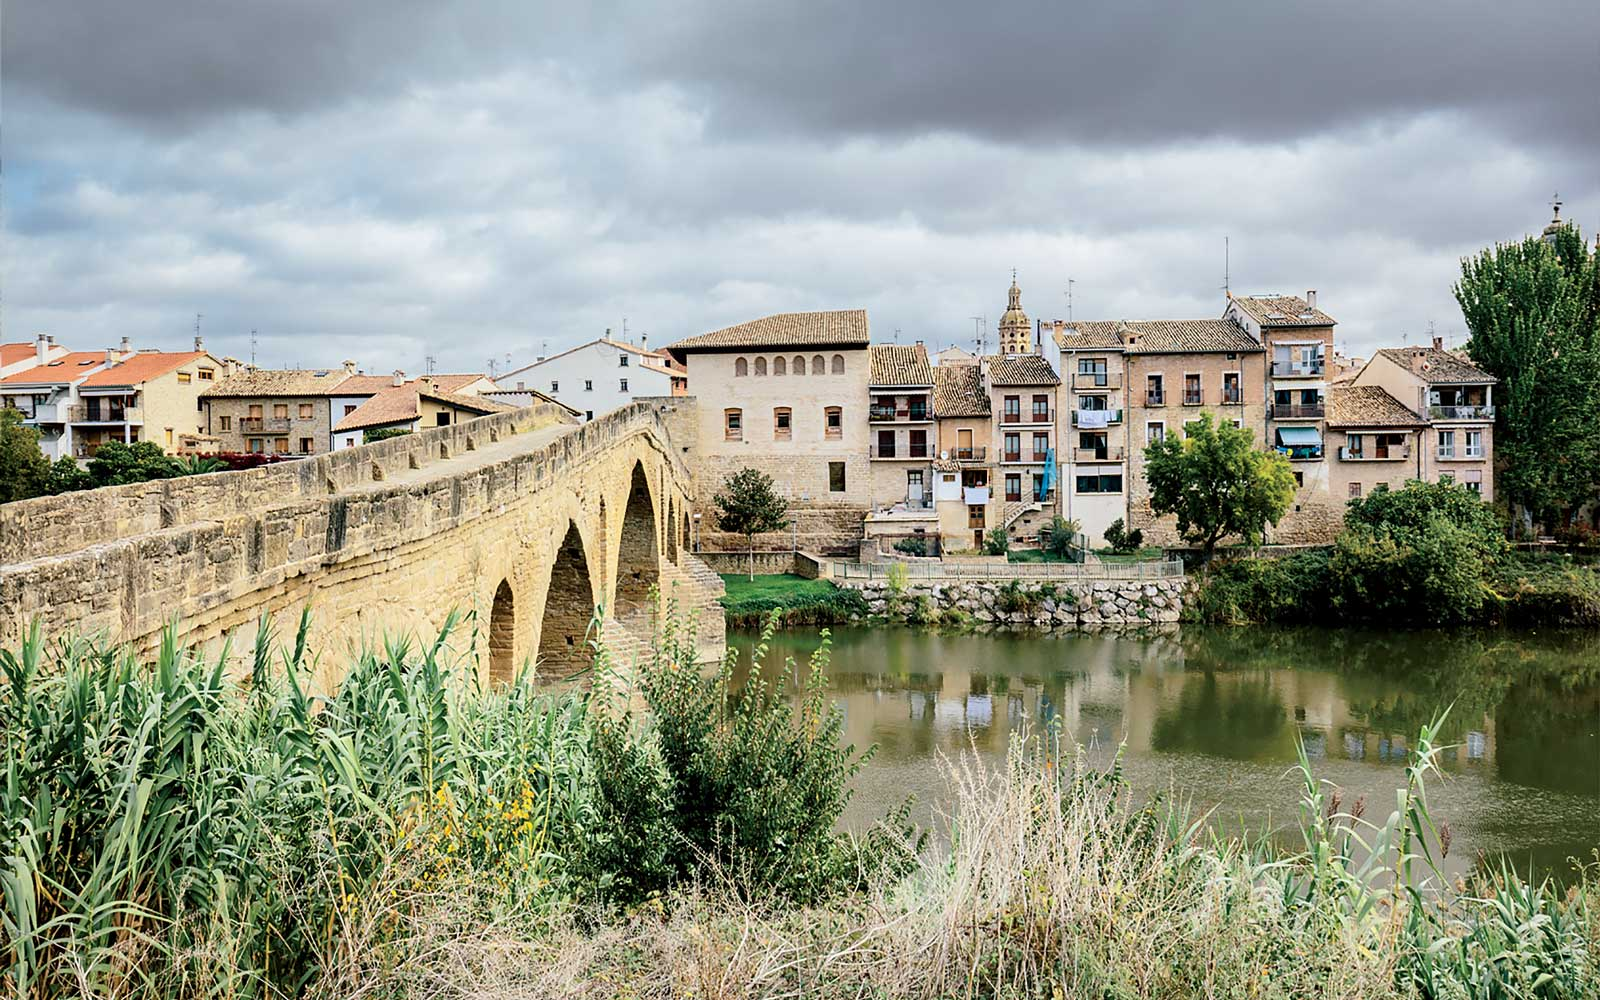 Puente la Reina in Rioja region, Spain